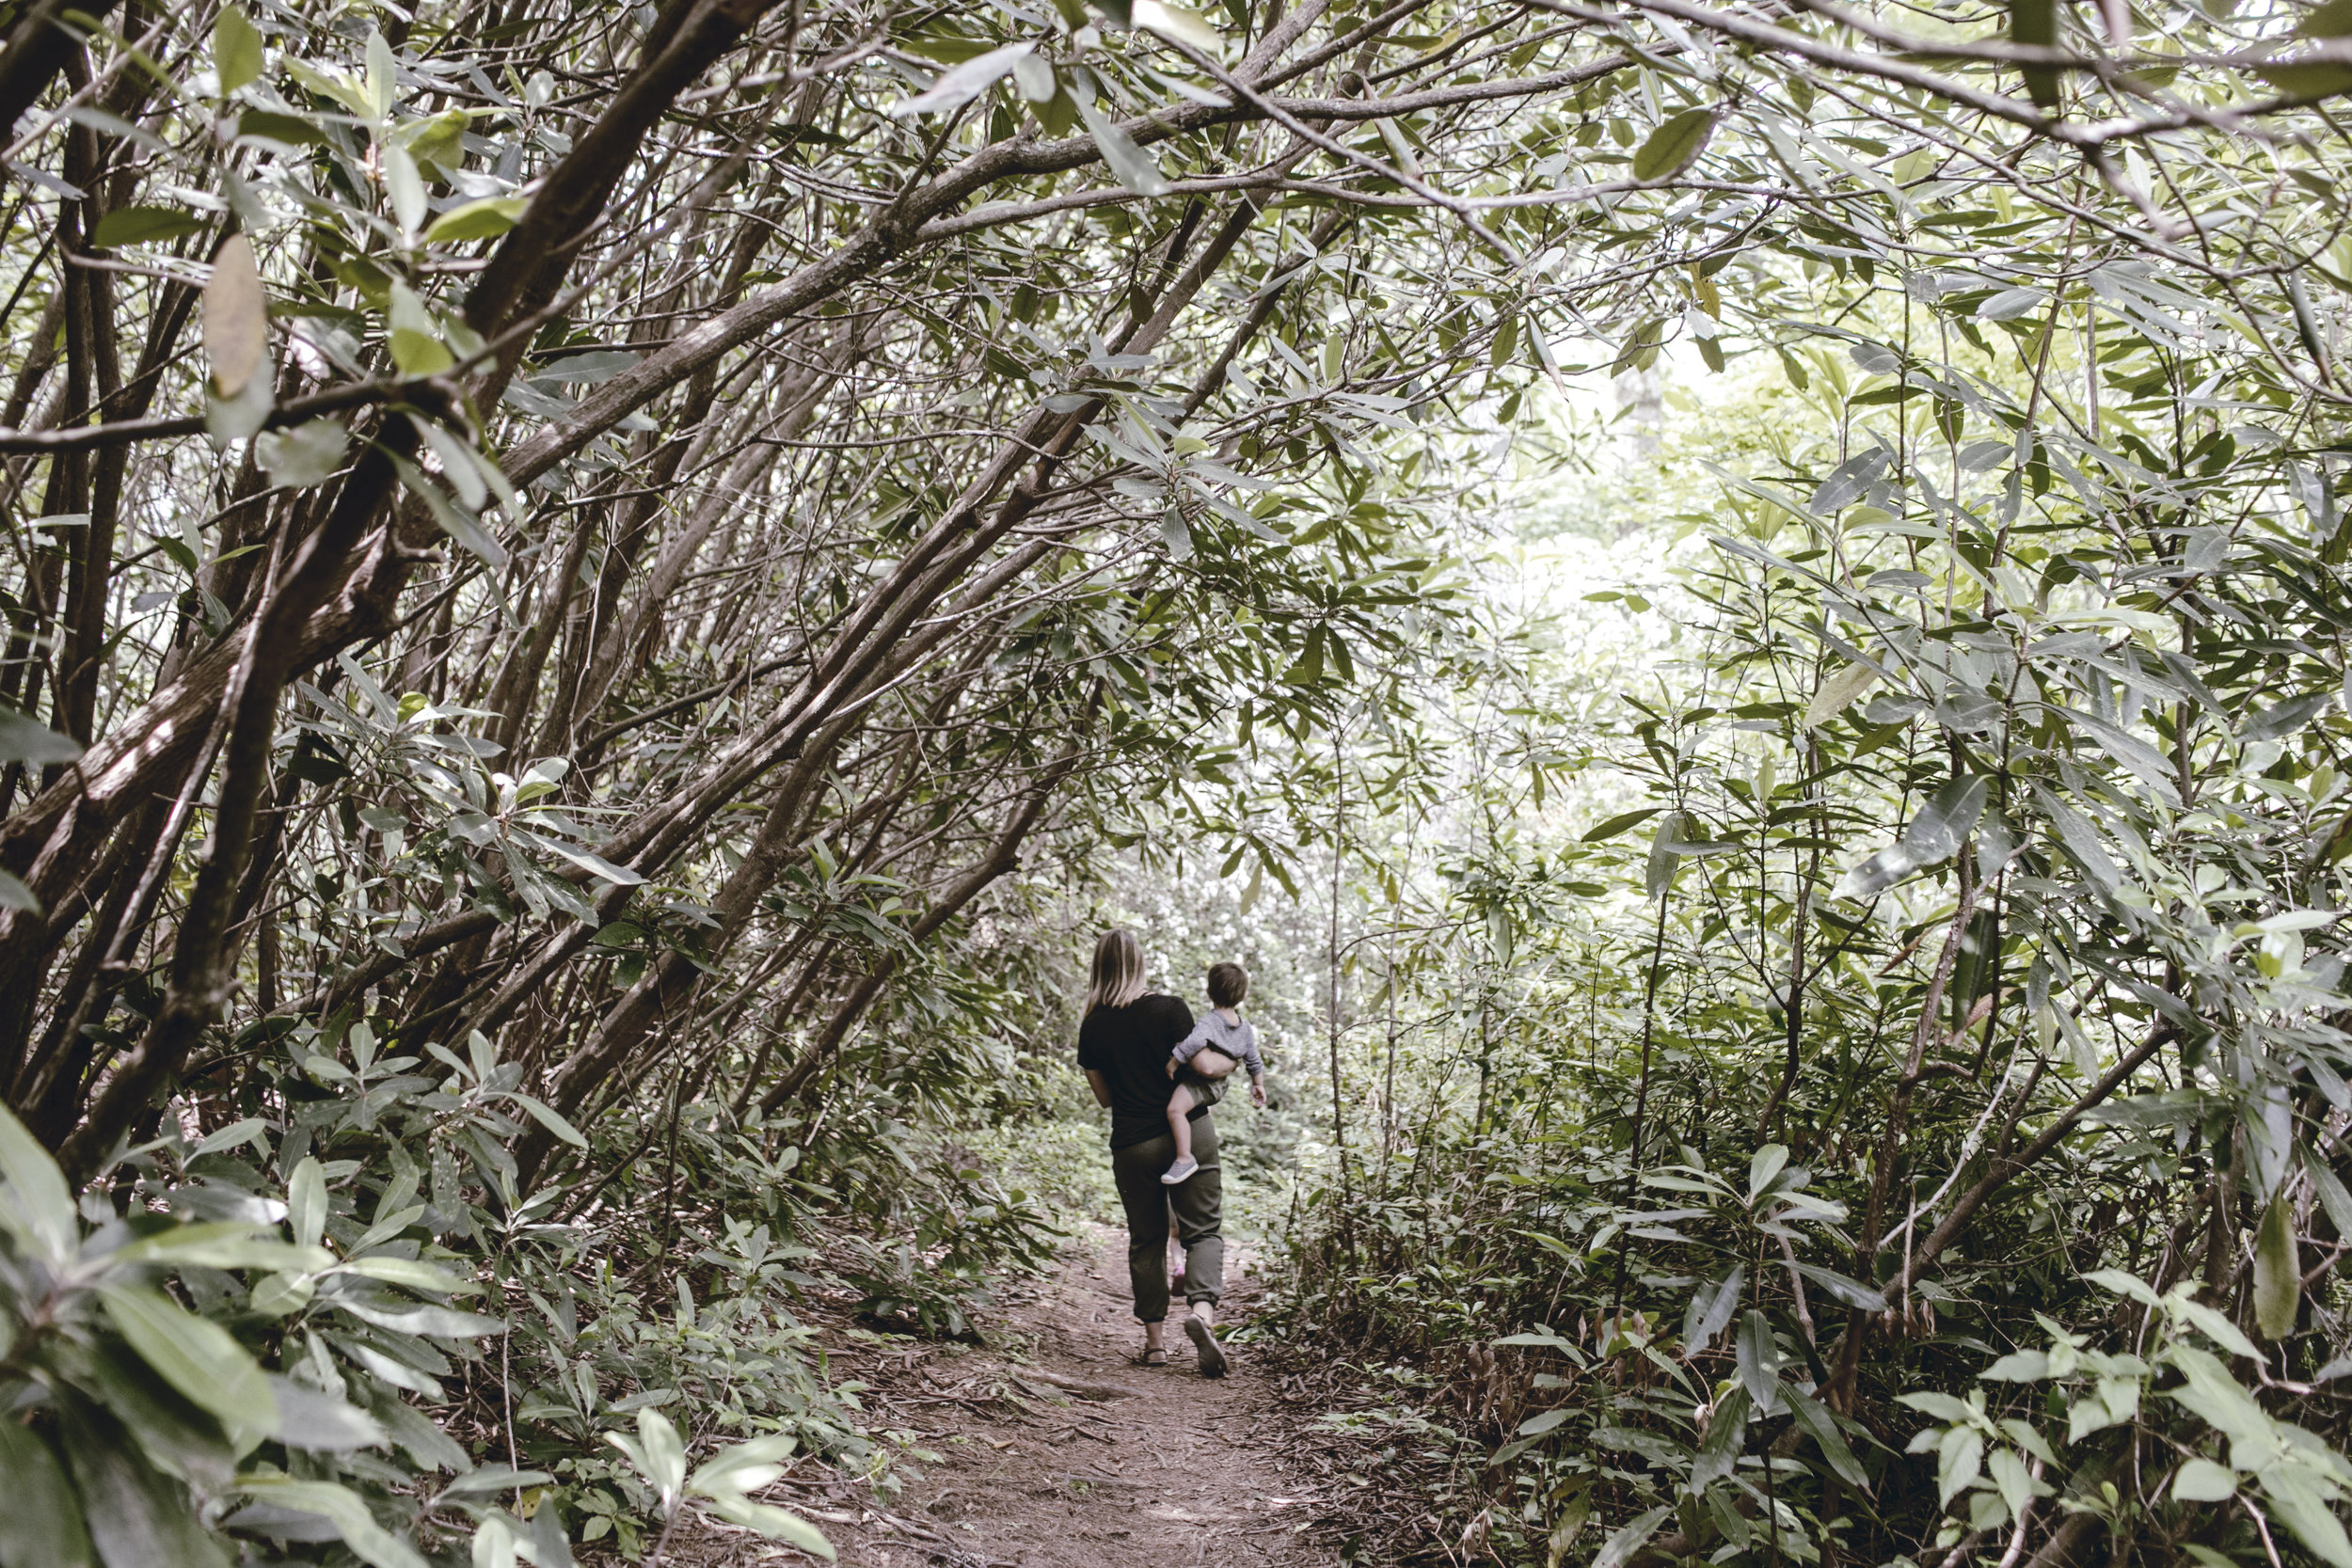 family hike on the trail / heirloomed